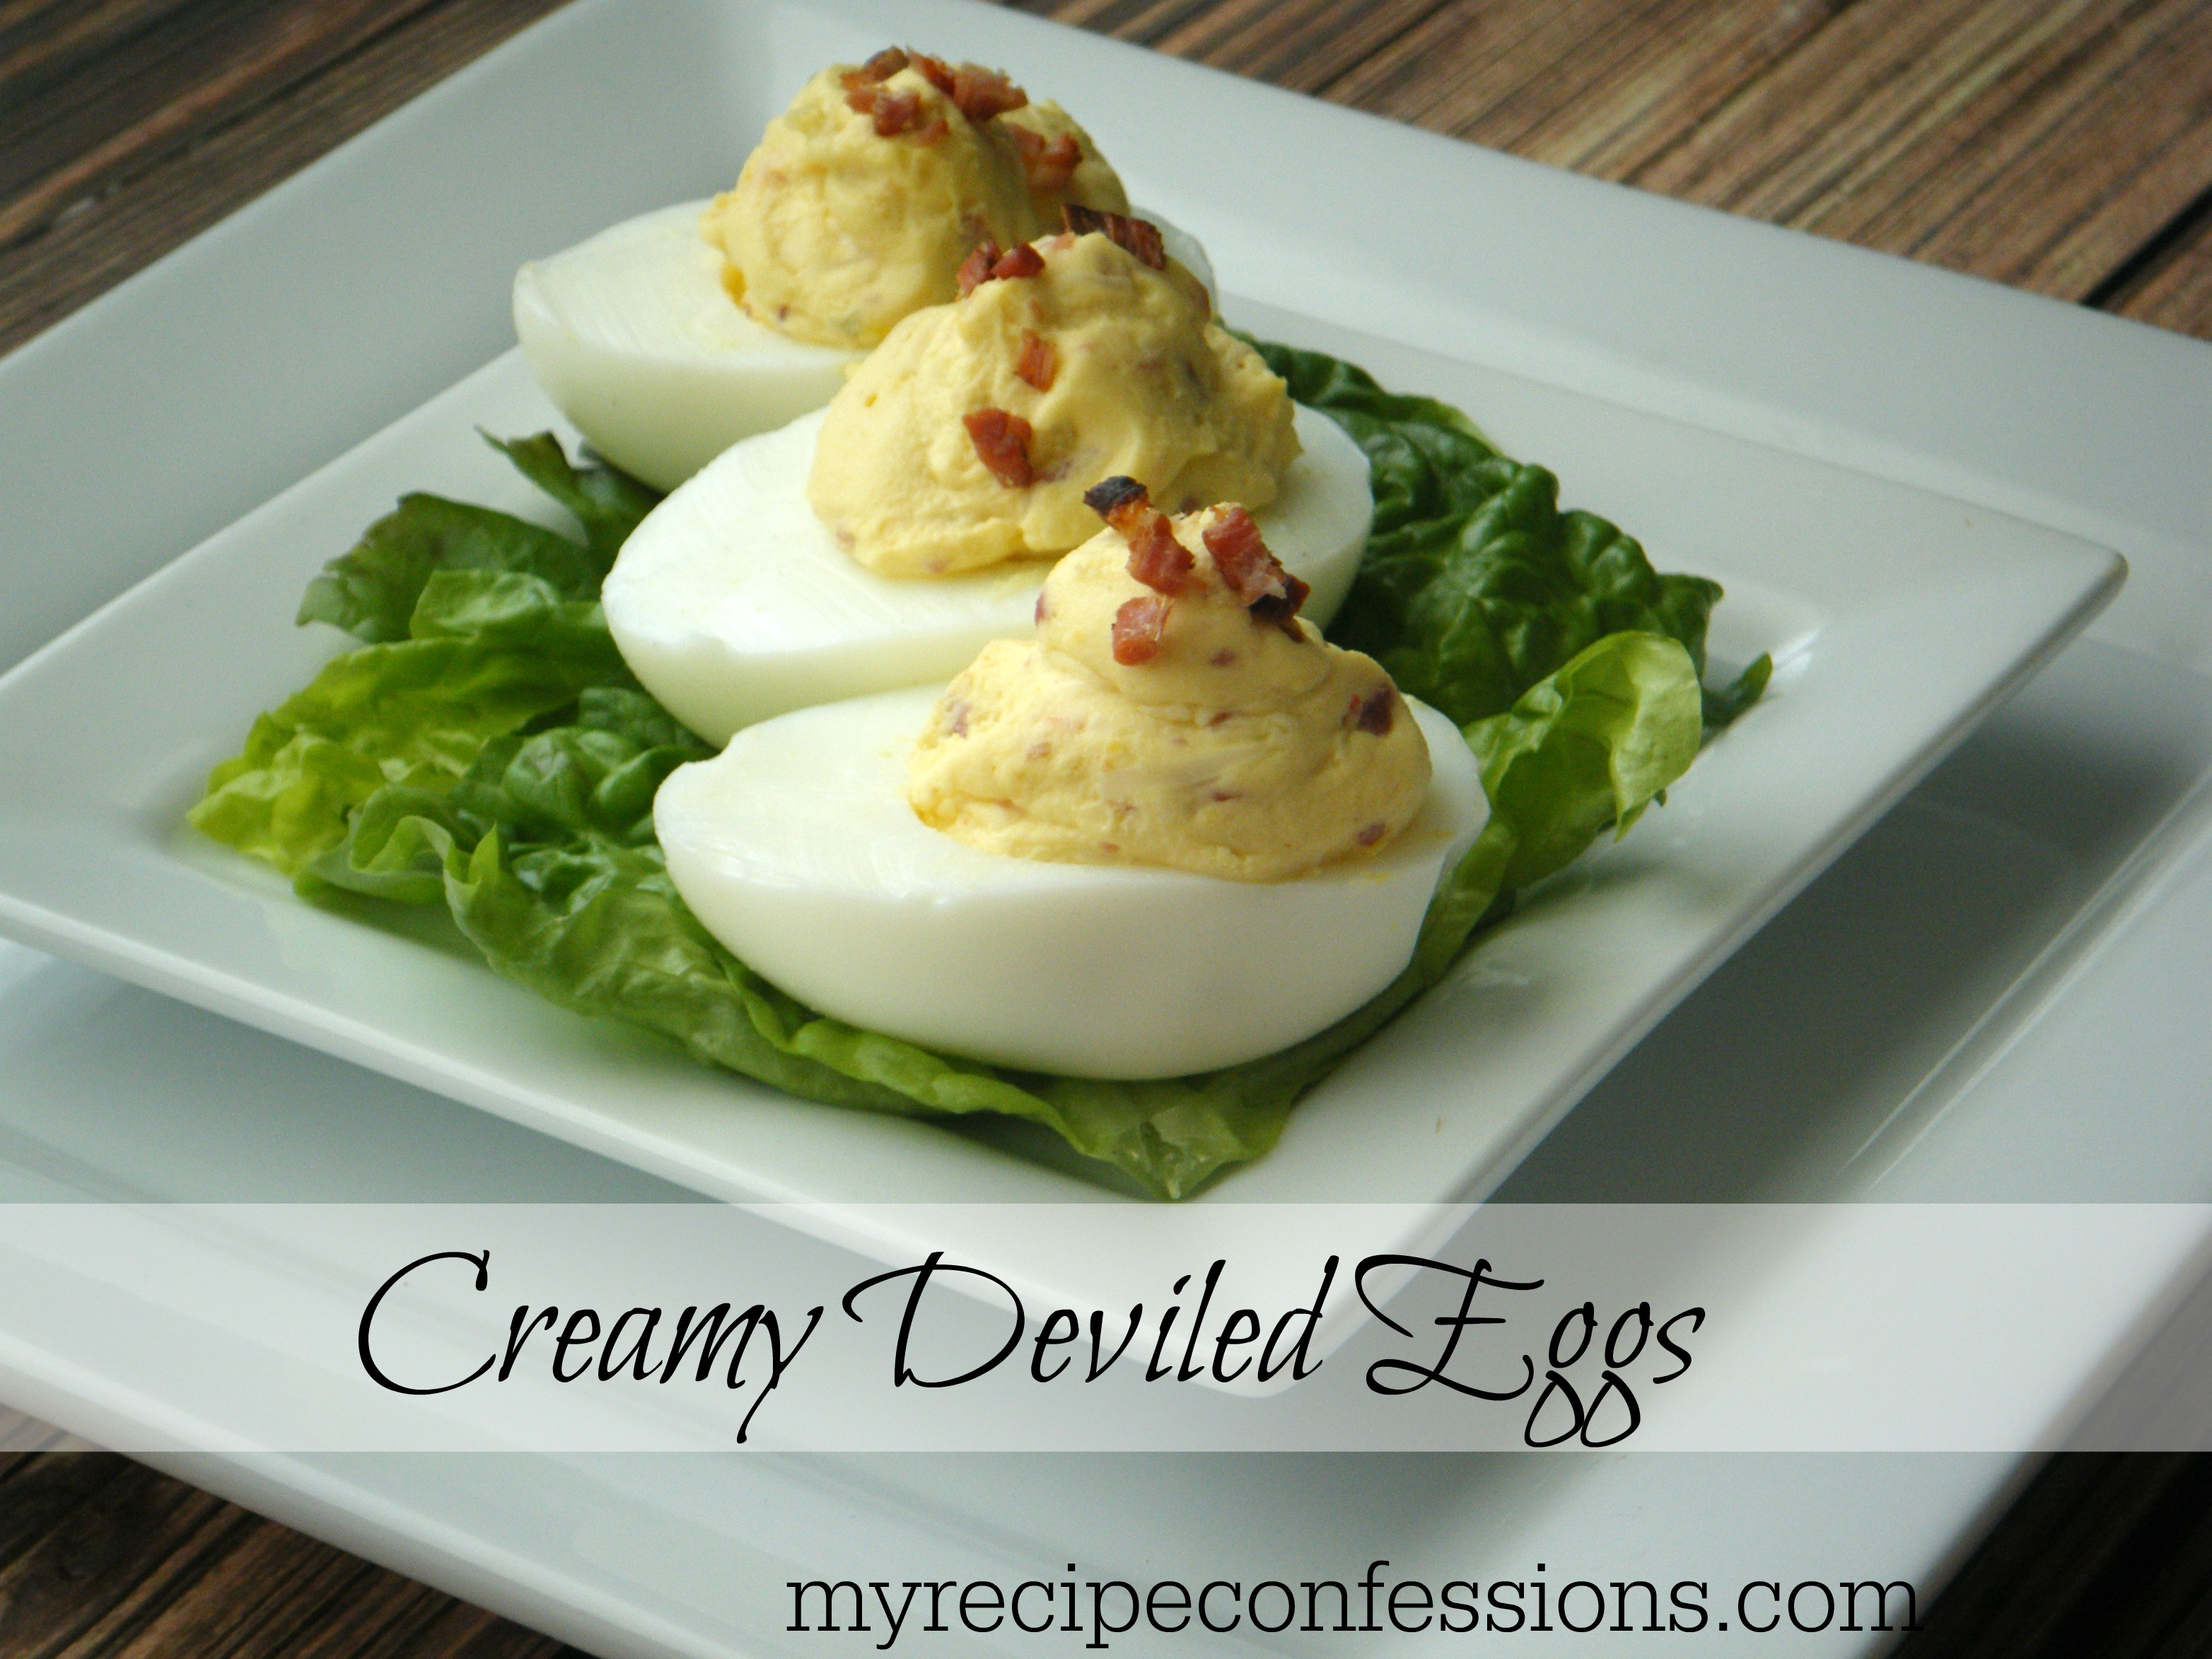 Creamy Deviled Eggs. I have tried many deviled egg recipes, but I wanted a recipe that was a little different that rest. These deviled eggs are very addiciting! They make the perfect appetizers and are a great gluten- free recipe!